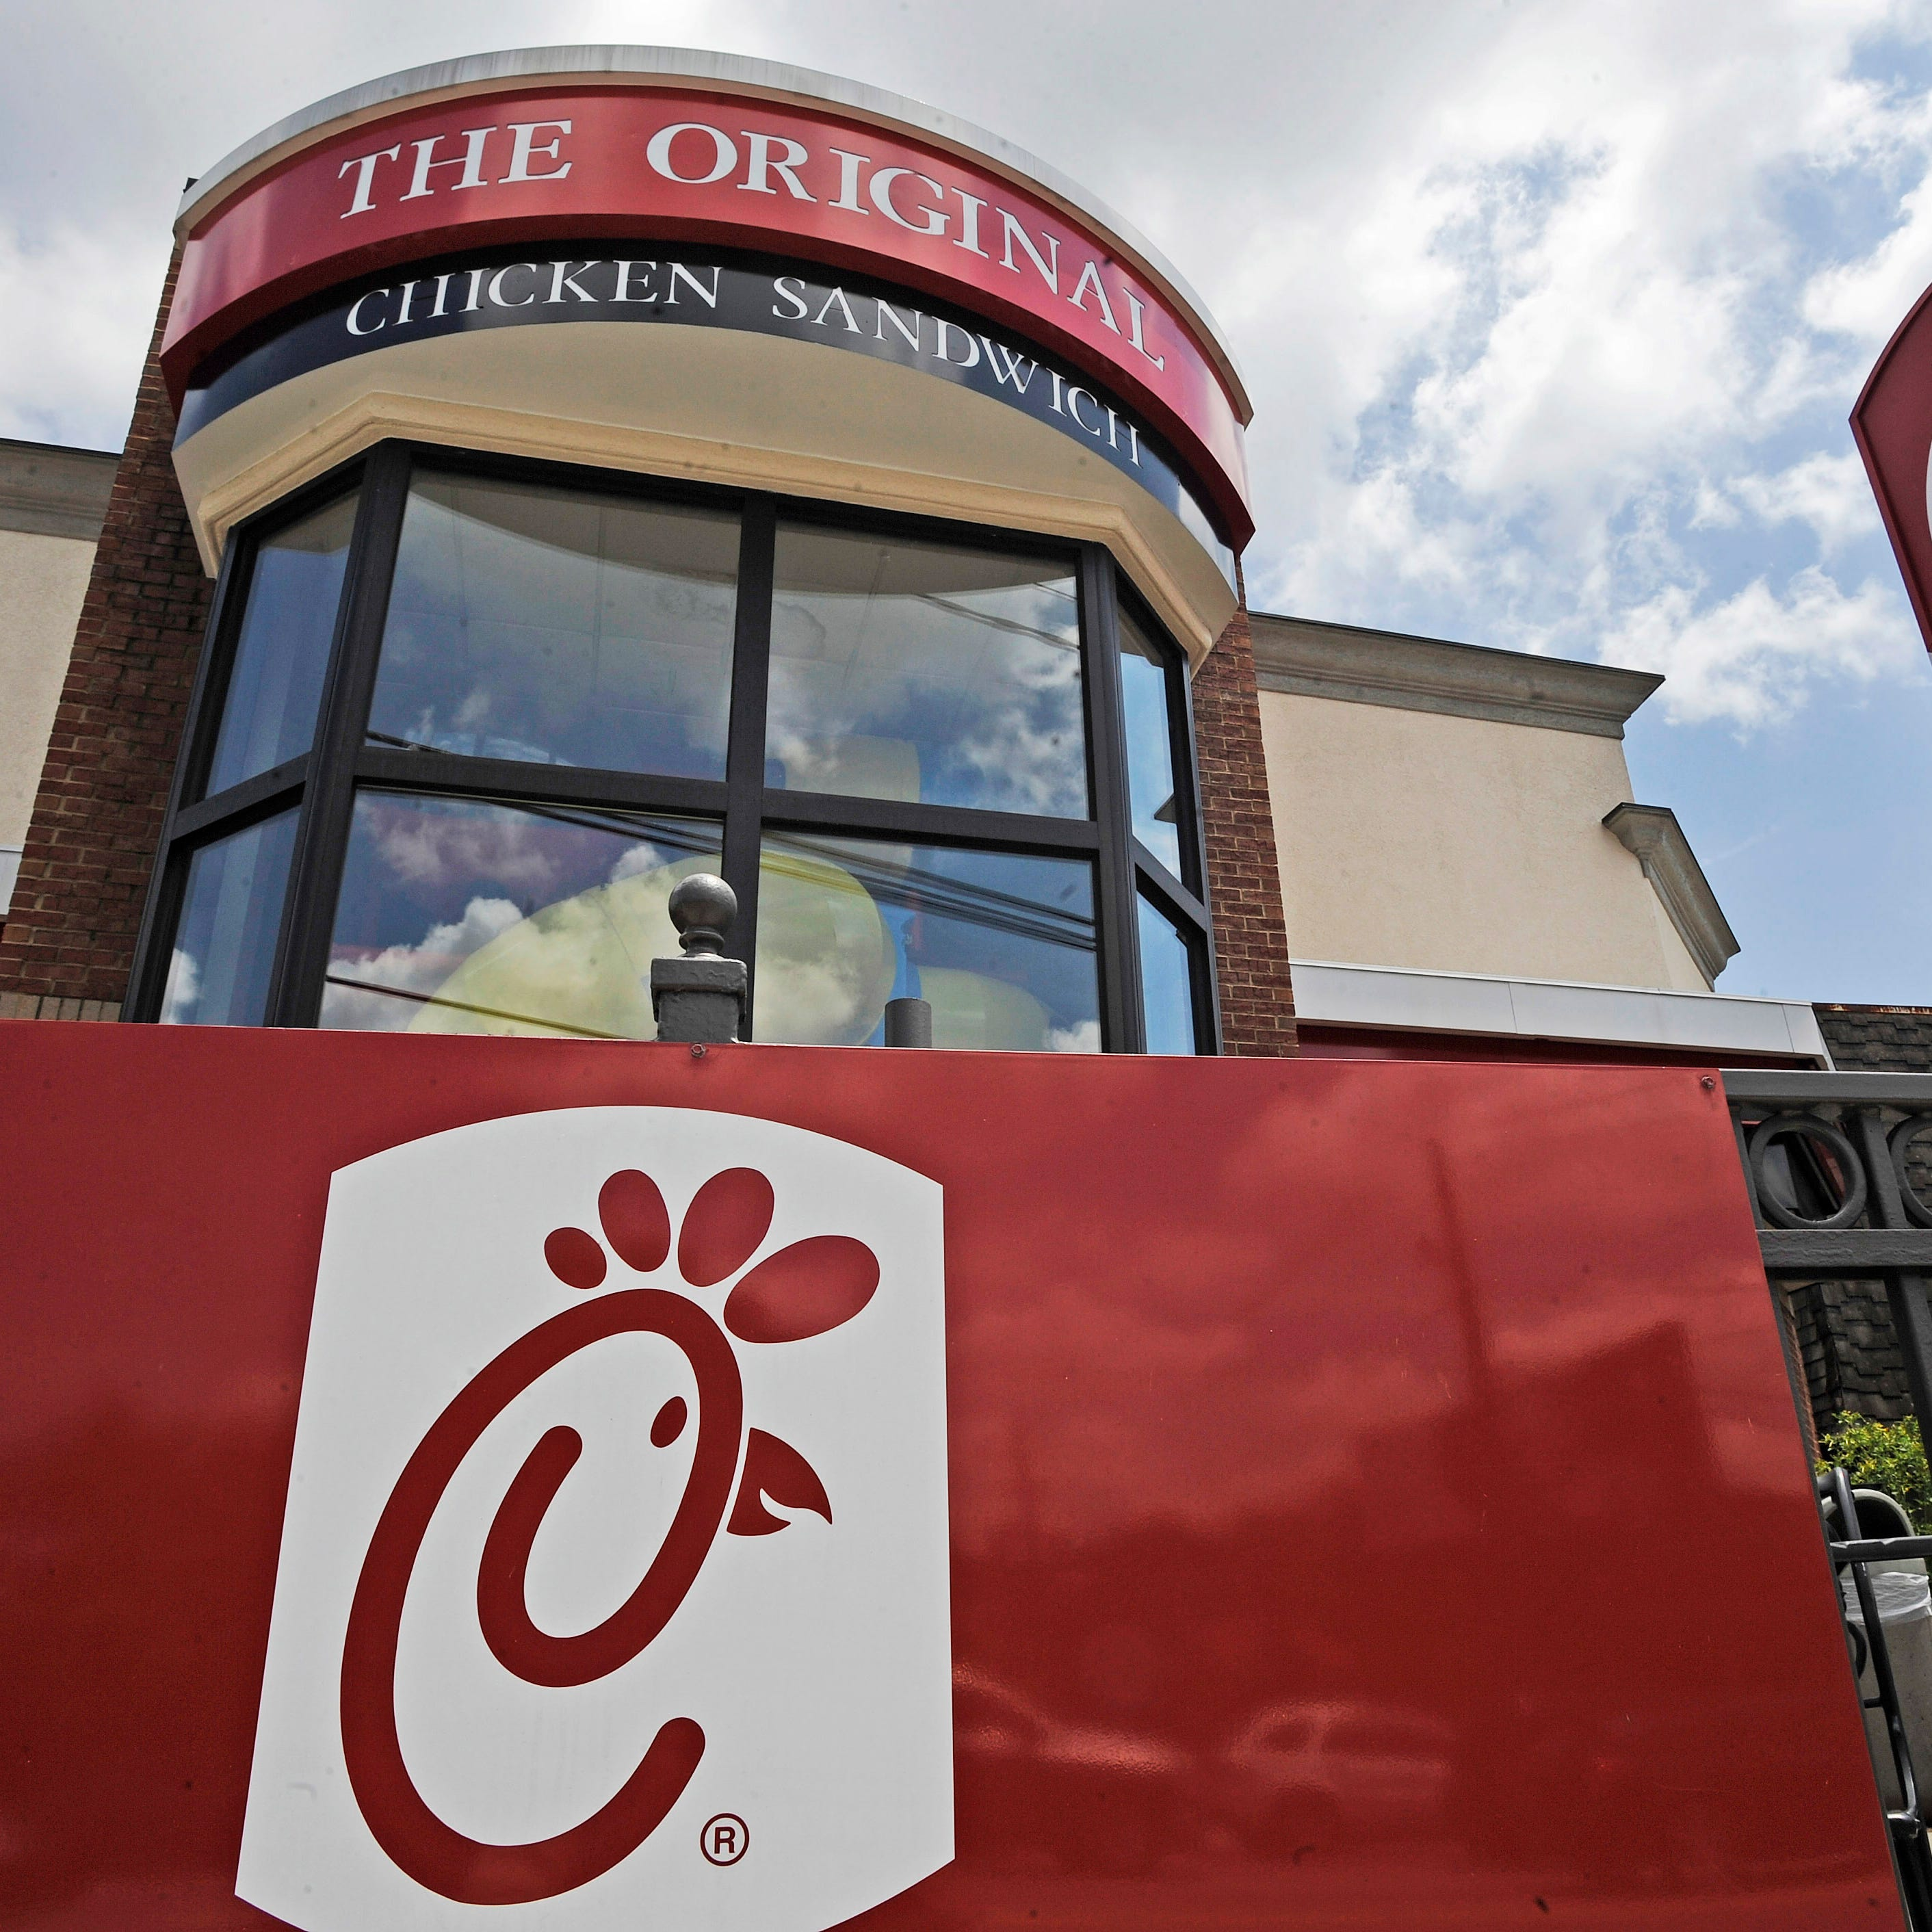 Texas Senate passes 'save Chick-Fil-A' bill opponents say allows LGBTQ discrimination